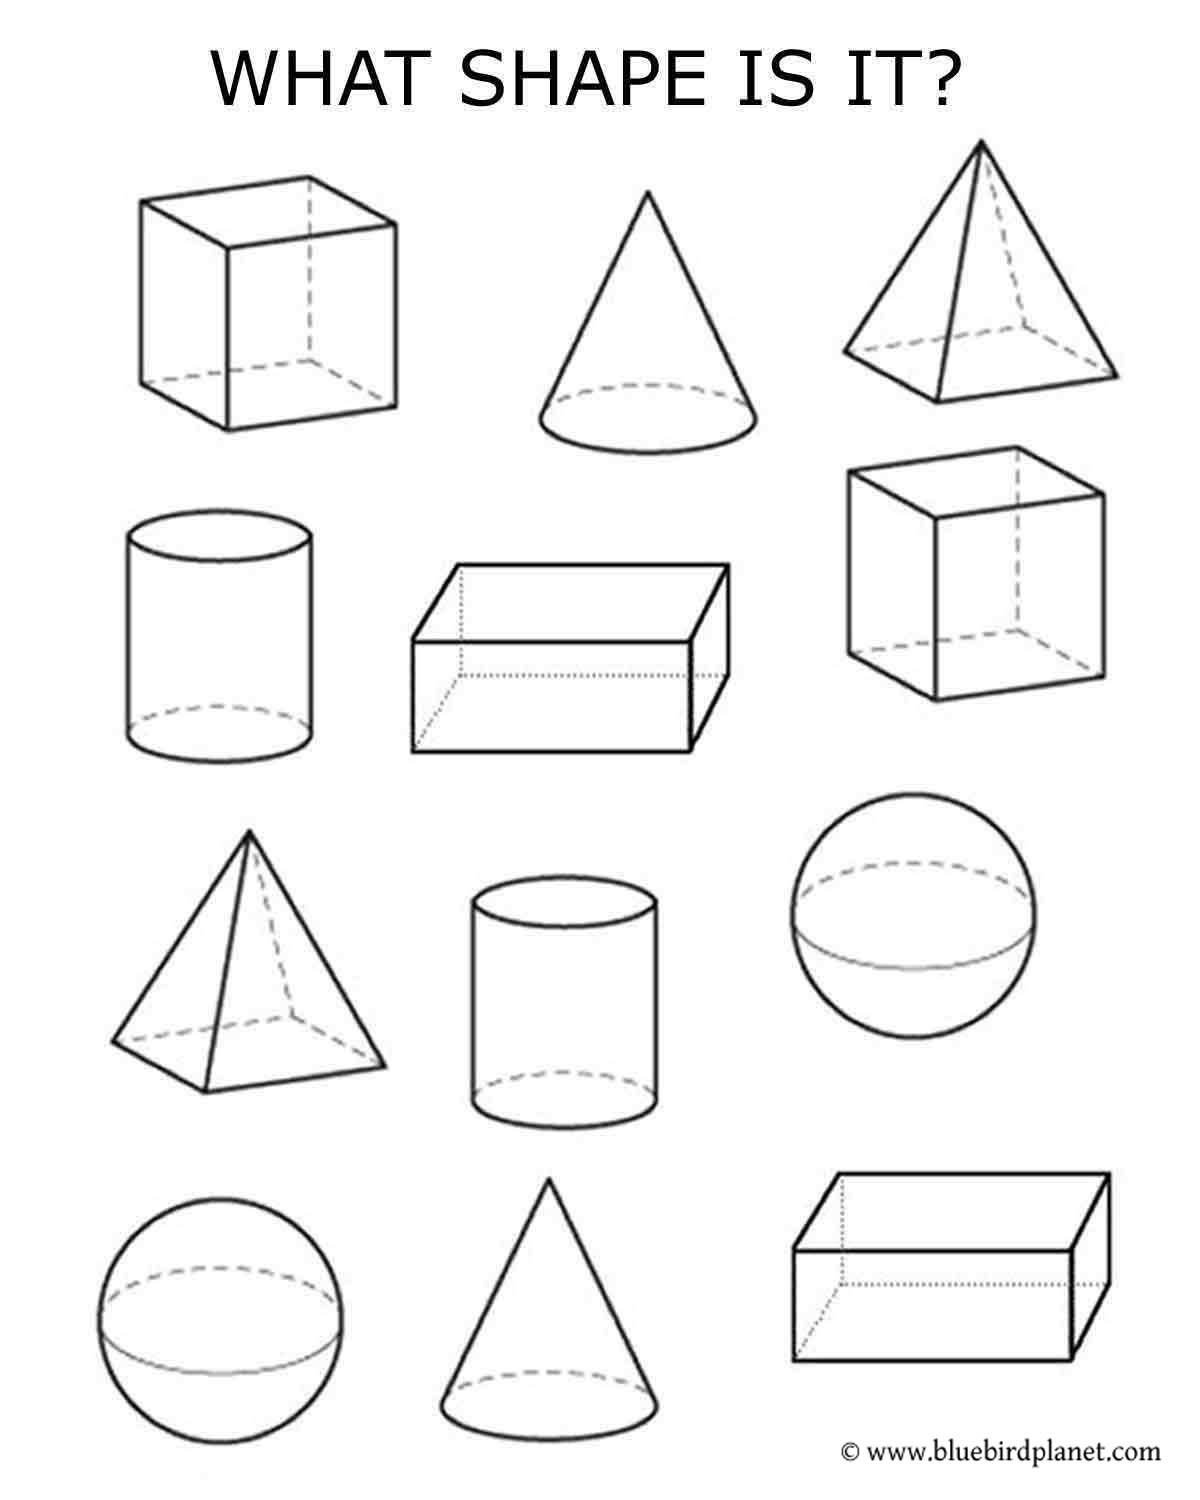 3d Shapes Worksheets 2nd Grade Free Printables for Kids